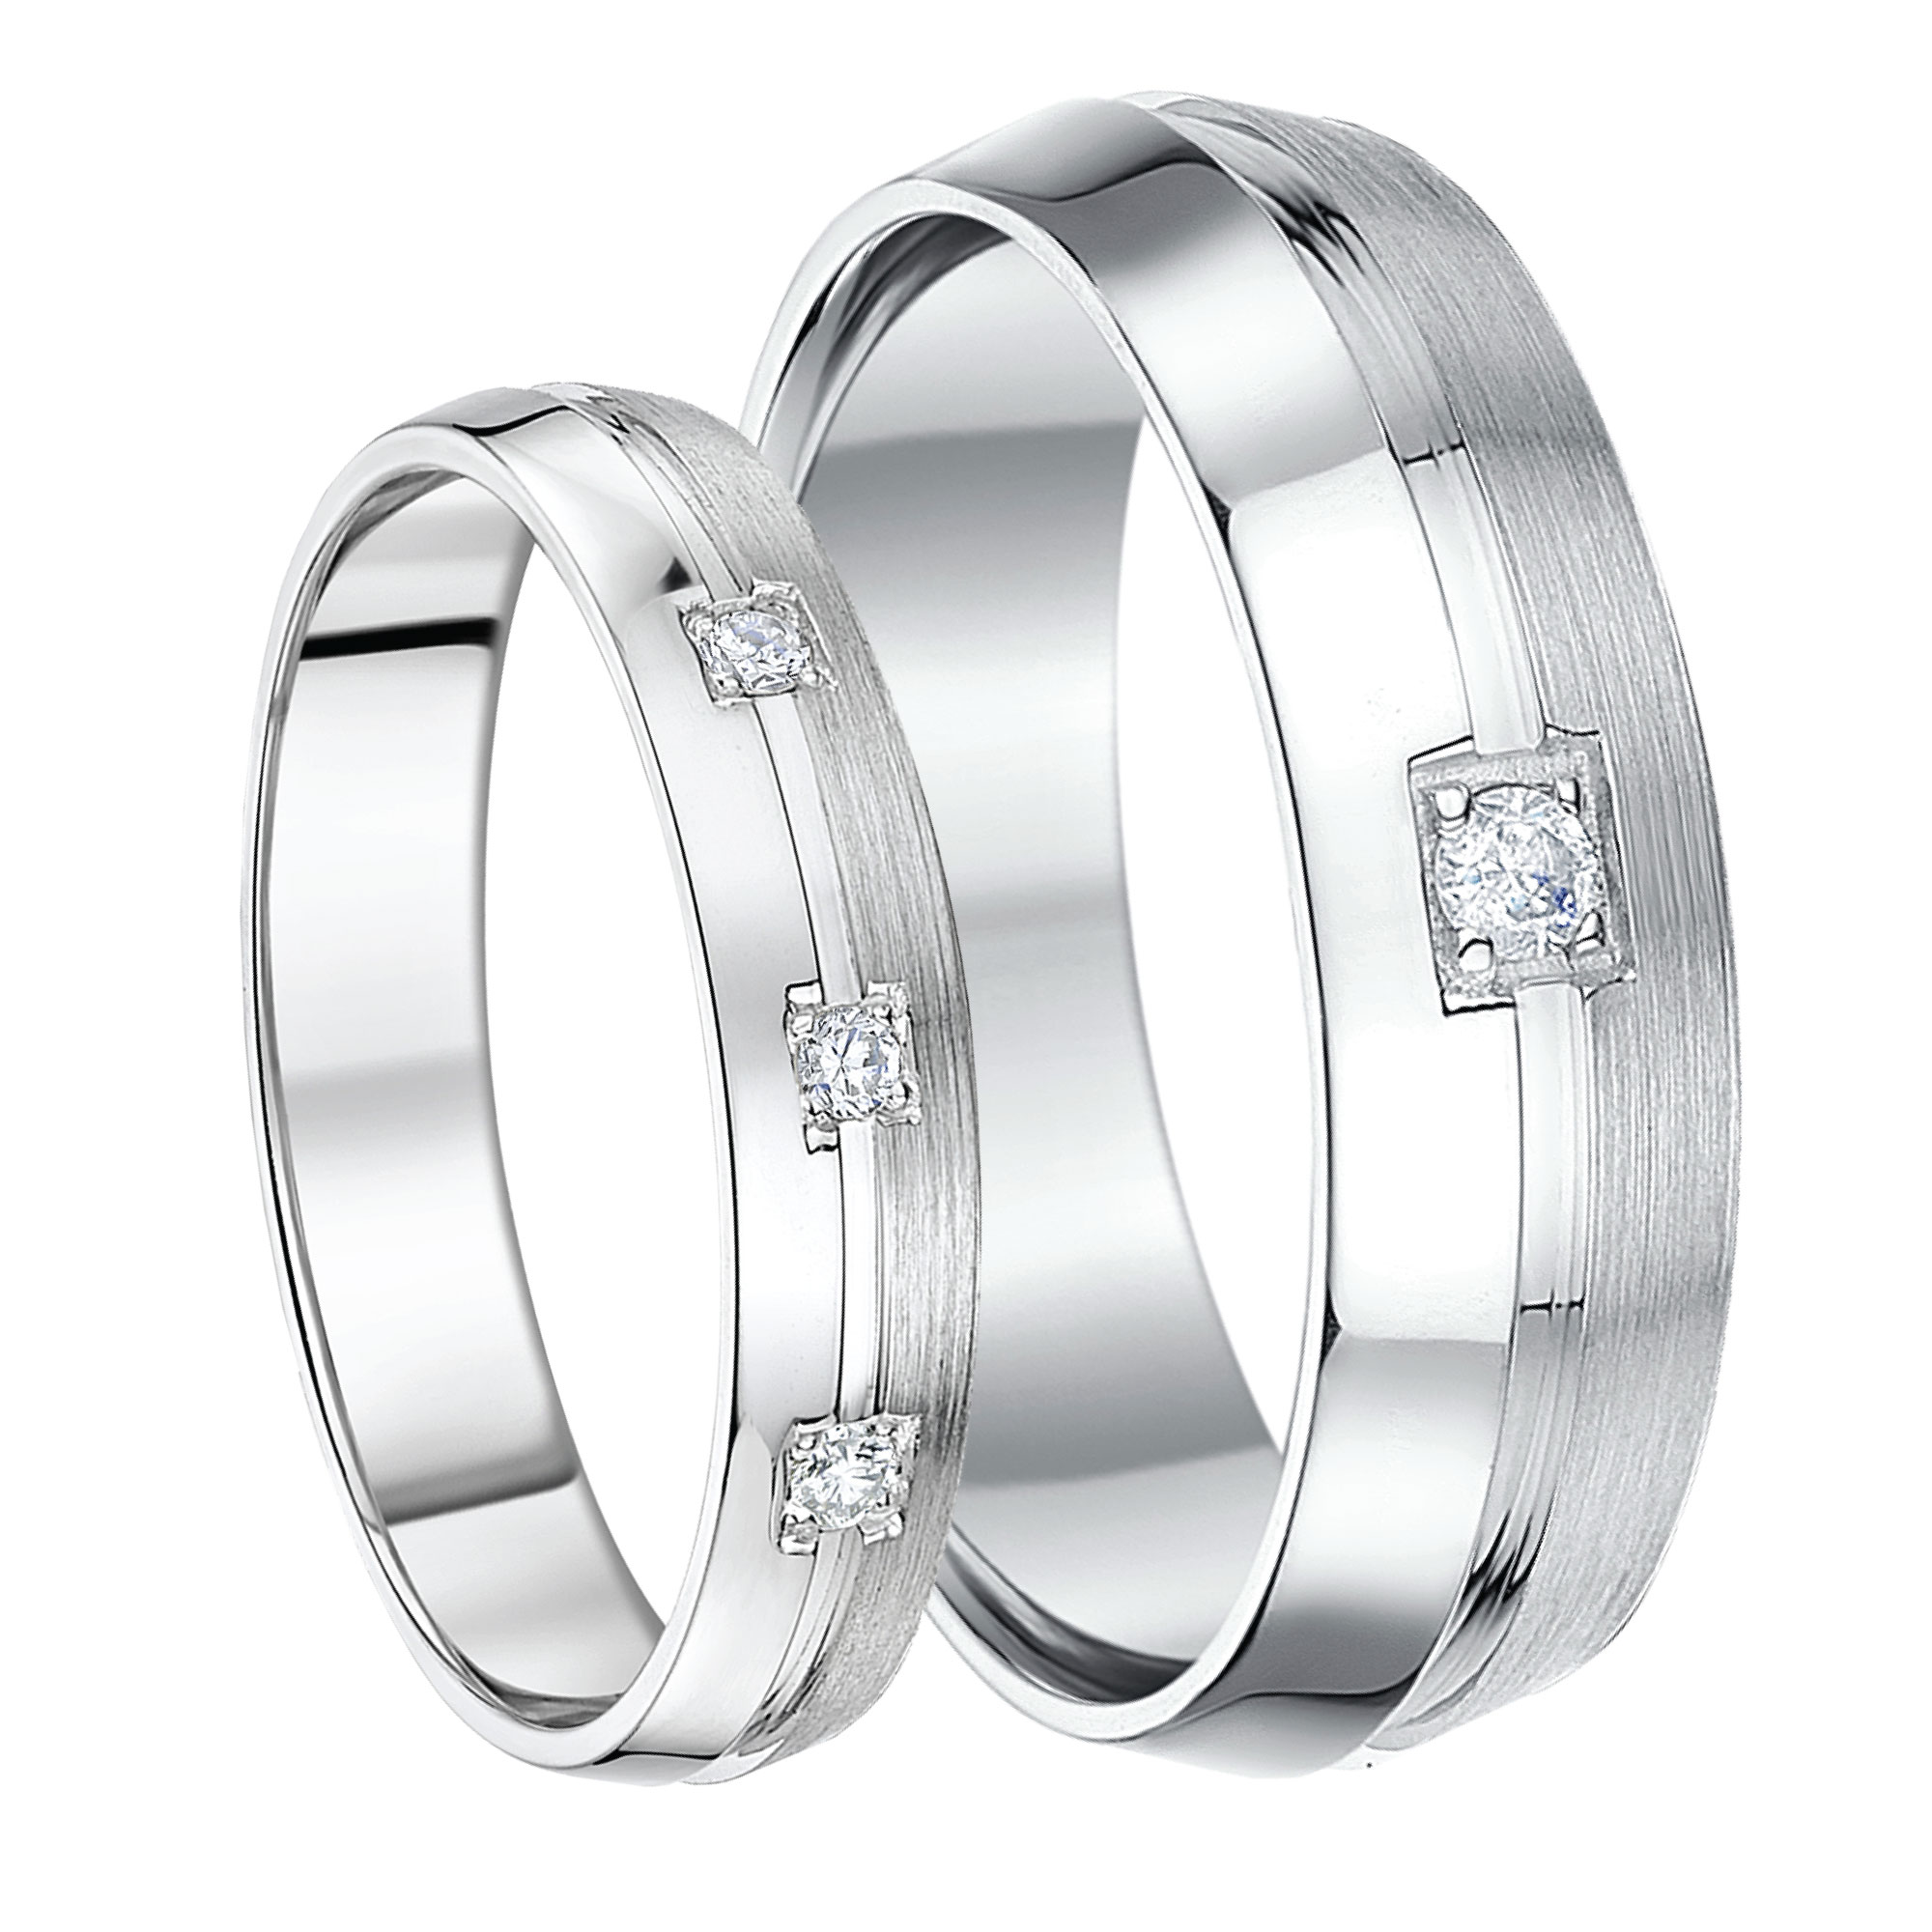 wedding ring sets his and hers cheap w download - Wedding Ring Sets His And Hers Cheap